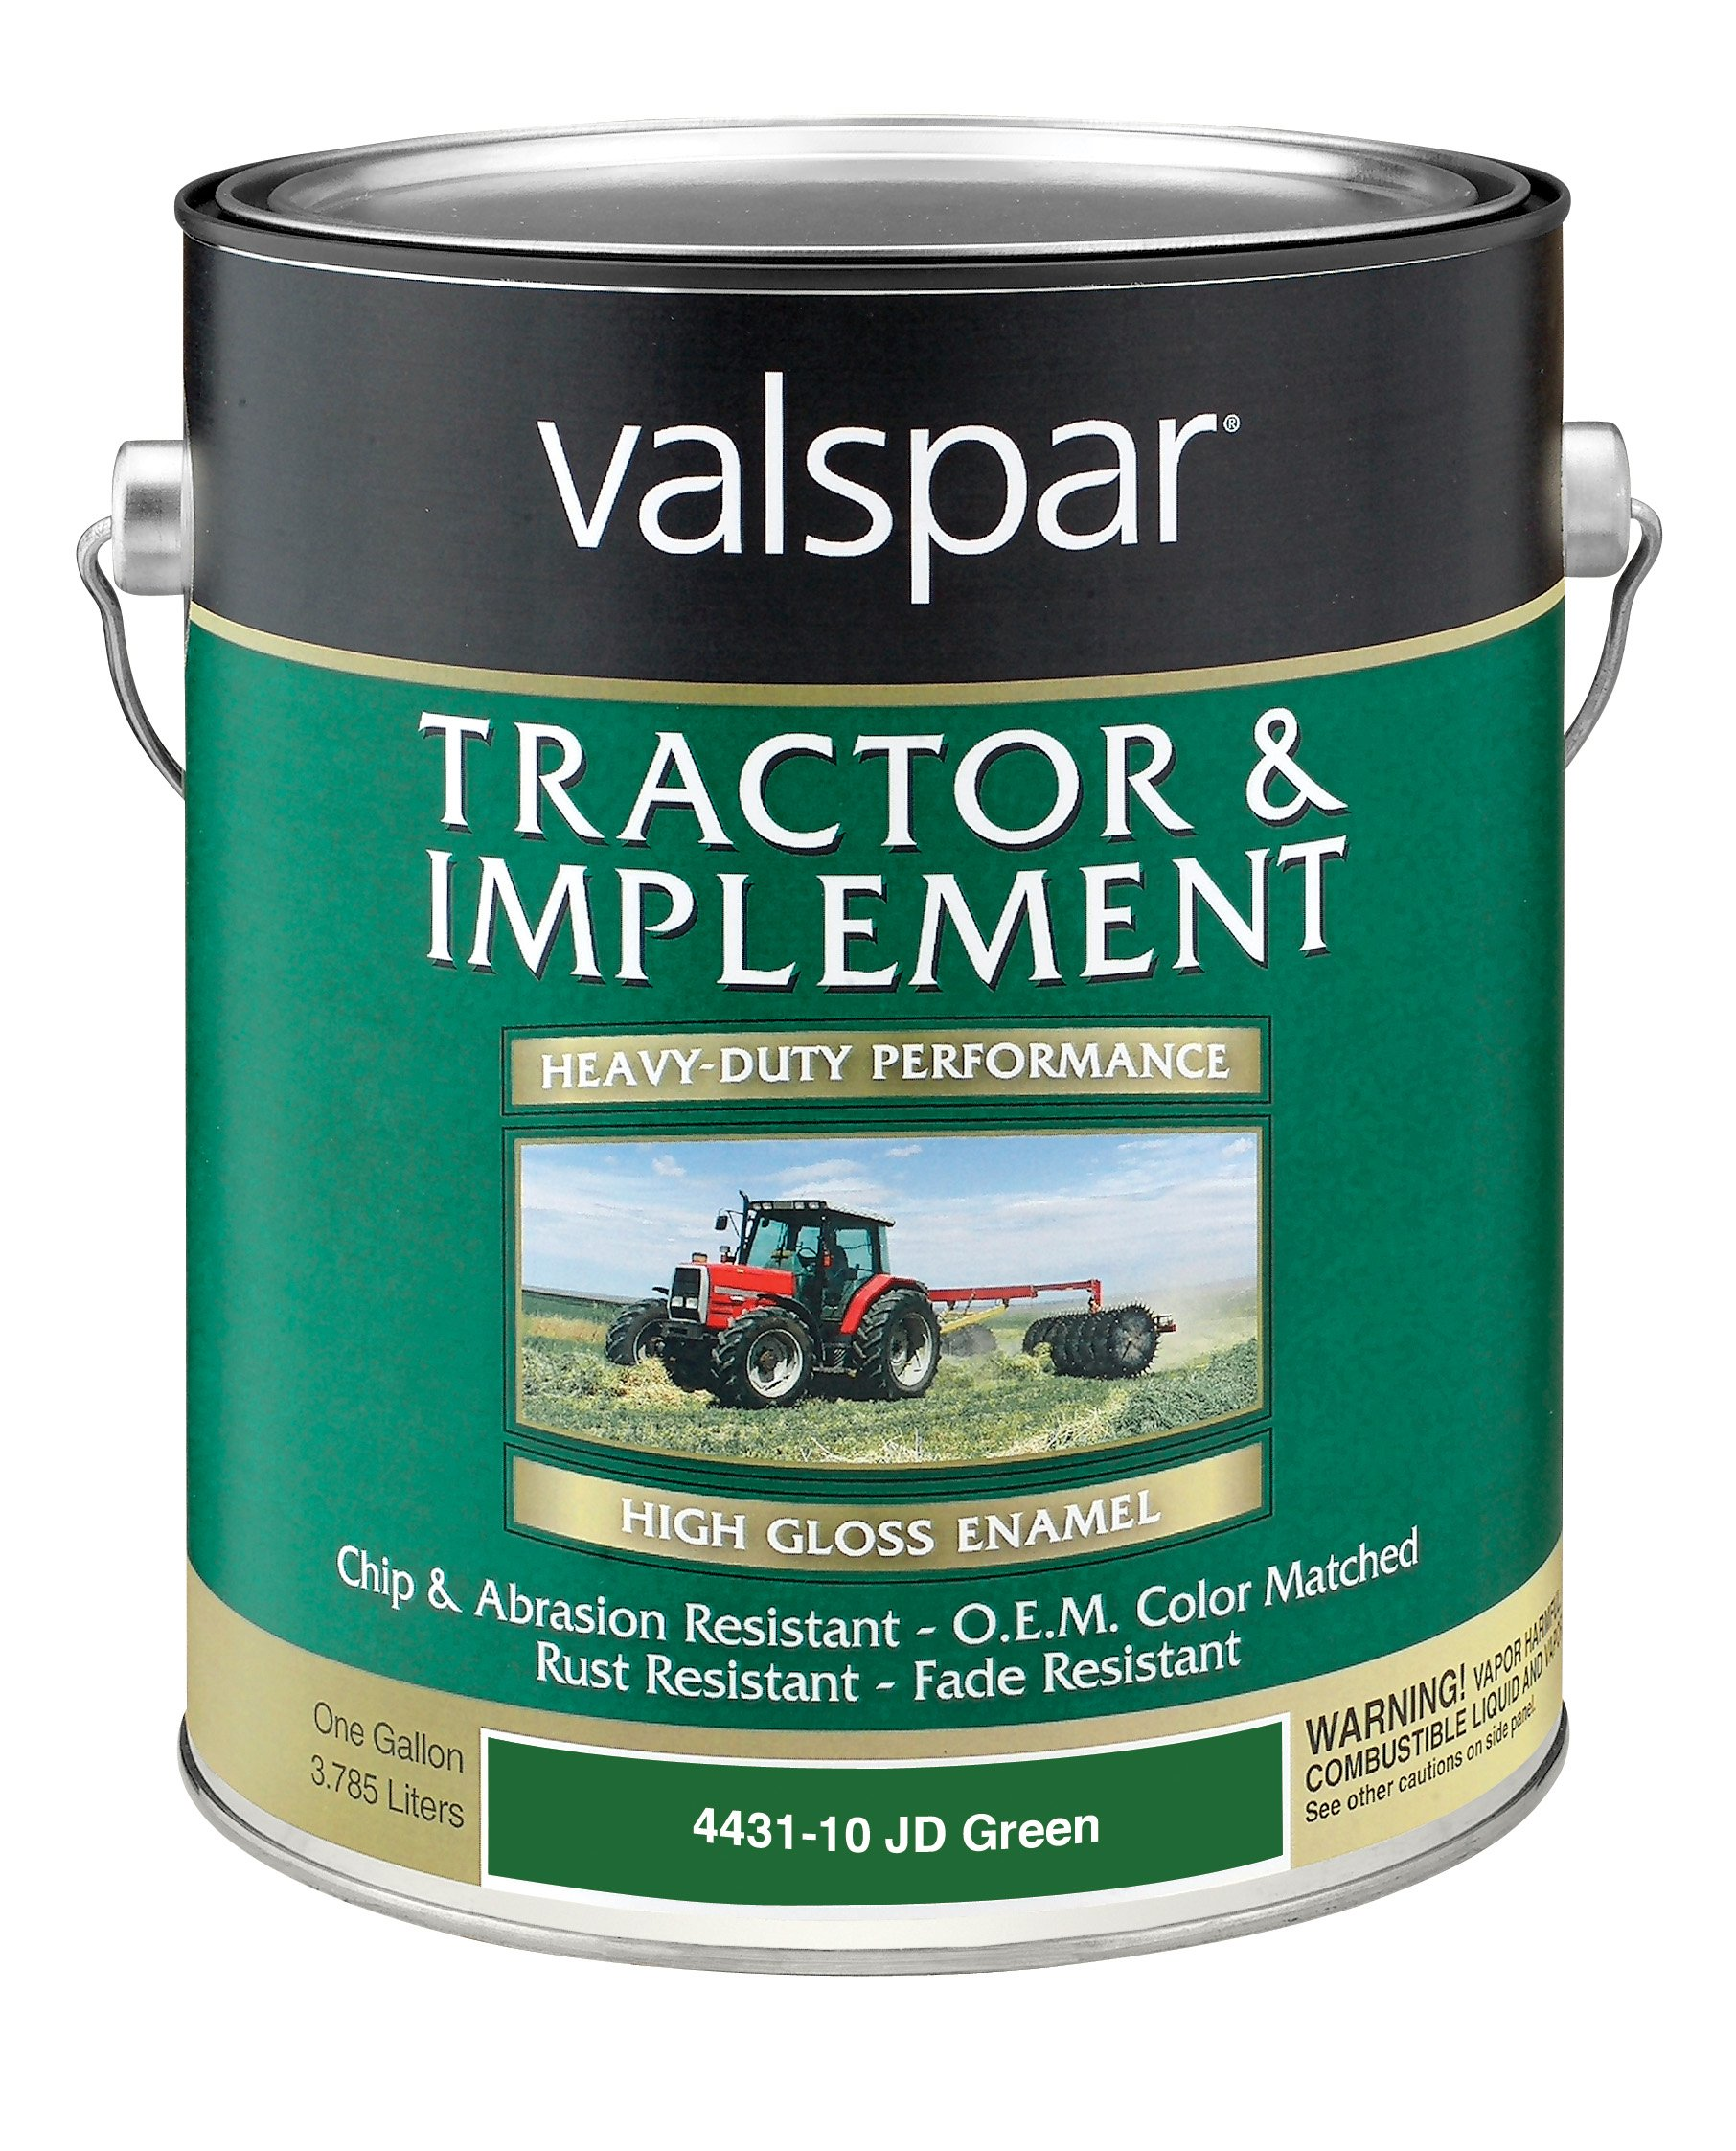 Valspar 4431-10 JD Green Tractor and Implement Paint - 1 Gallon